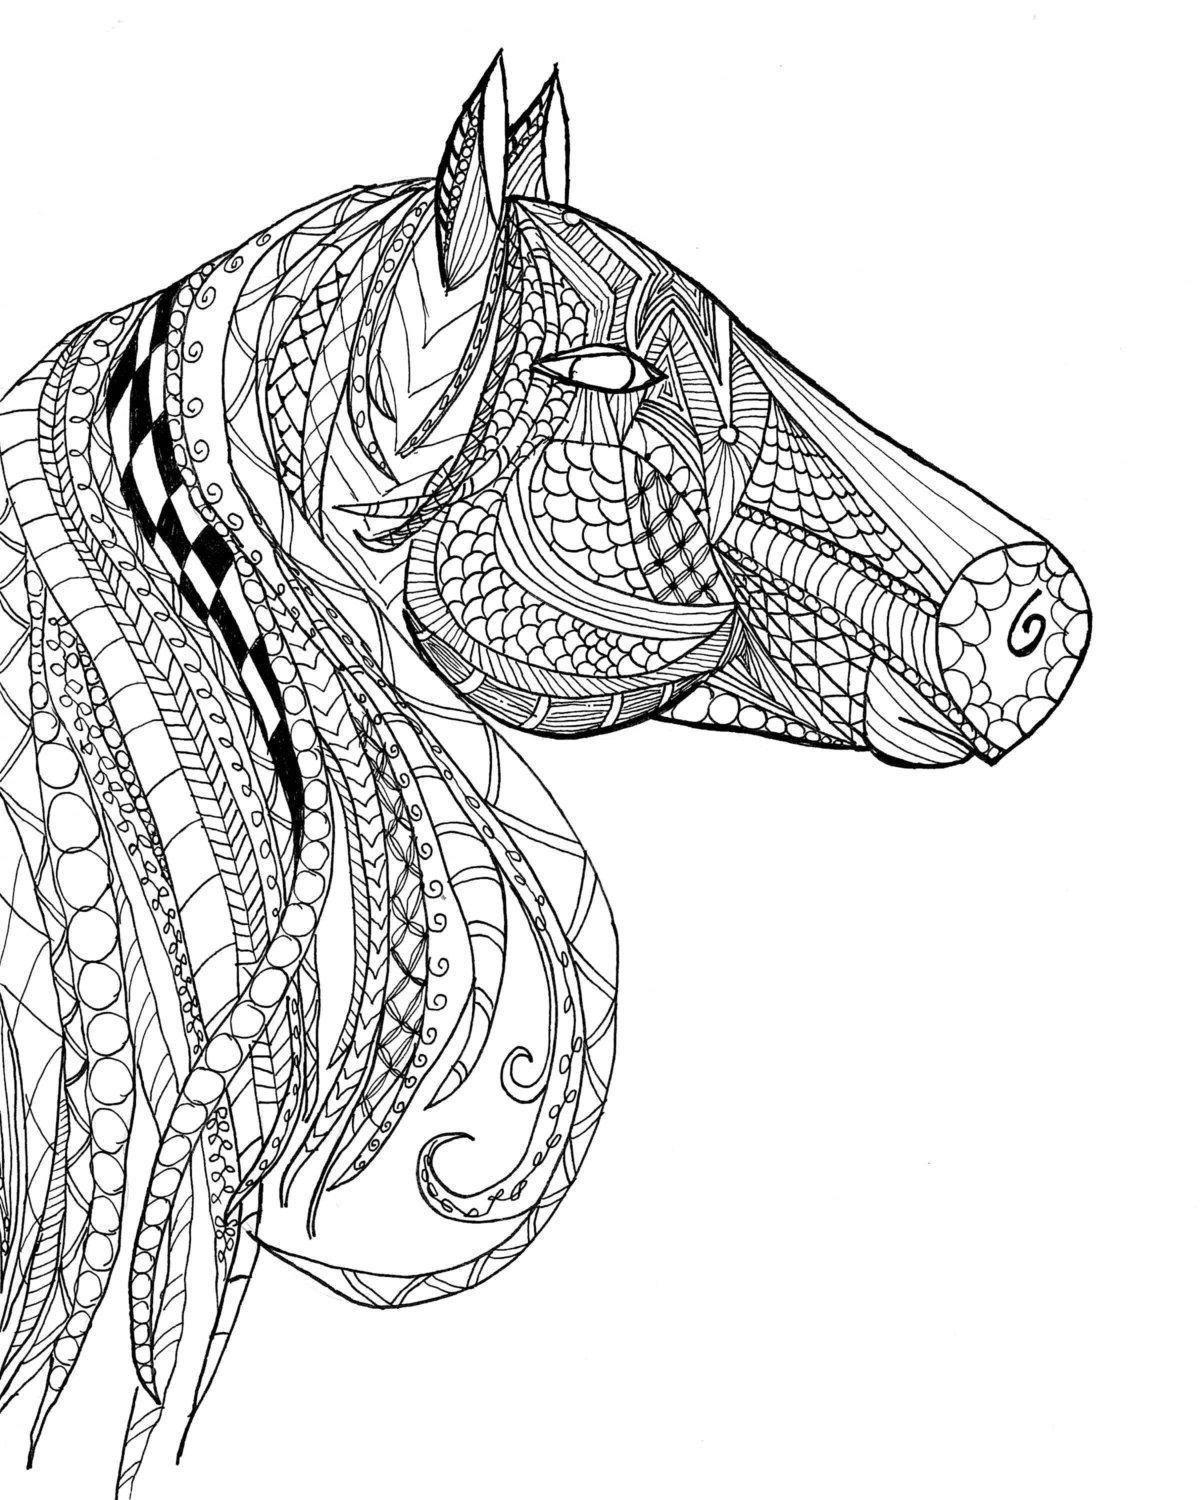 horse coloring pages free horse coloring pages for kids coloring pages for kids coloring horse pages free